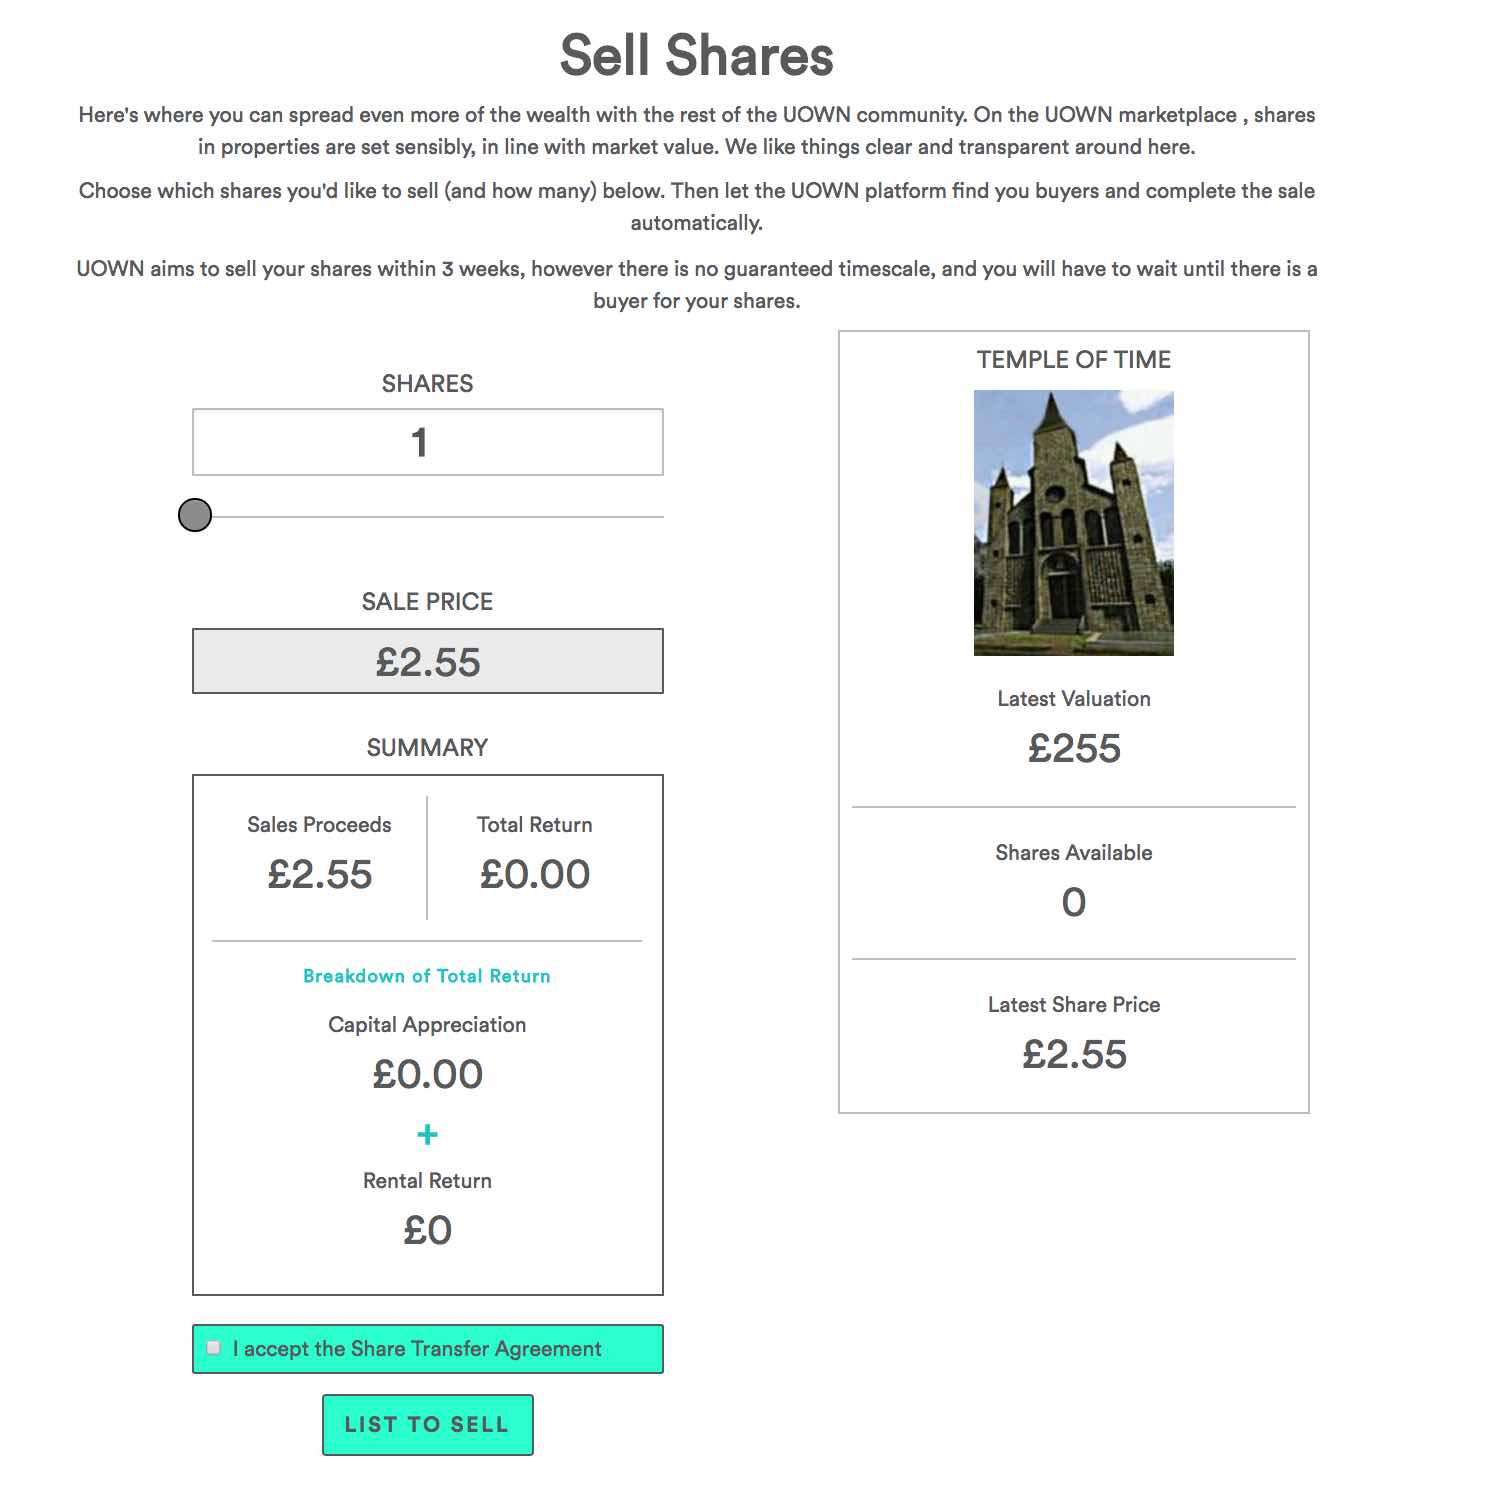 Example of the Sell Shares page